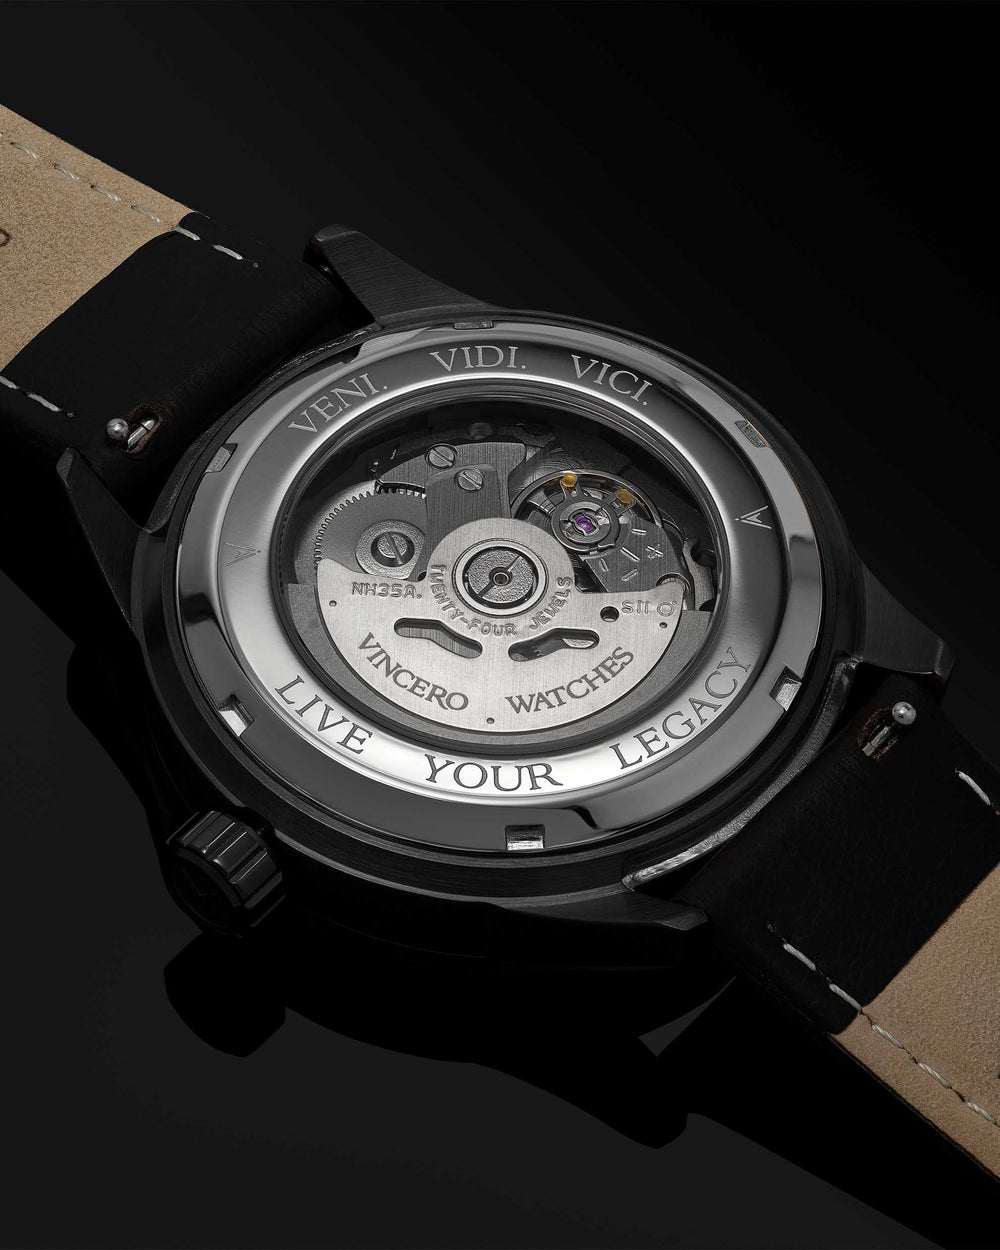 Icon Automatic 316L Stainless Steel Caseback with Veni Vidi Vici Live Your Legacy Engraving